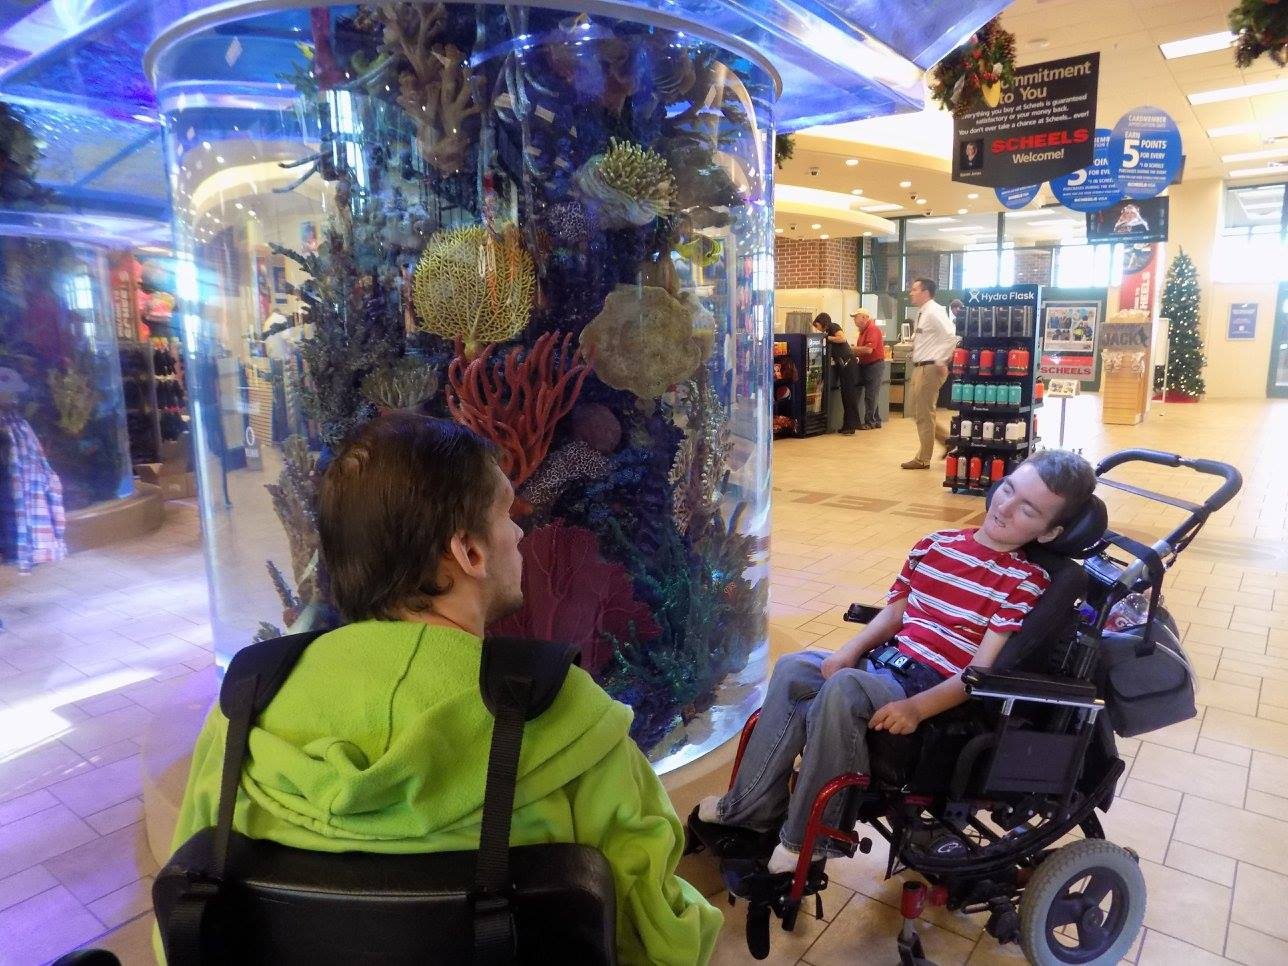 The Scheels Fish Tank